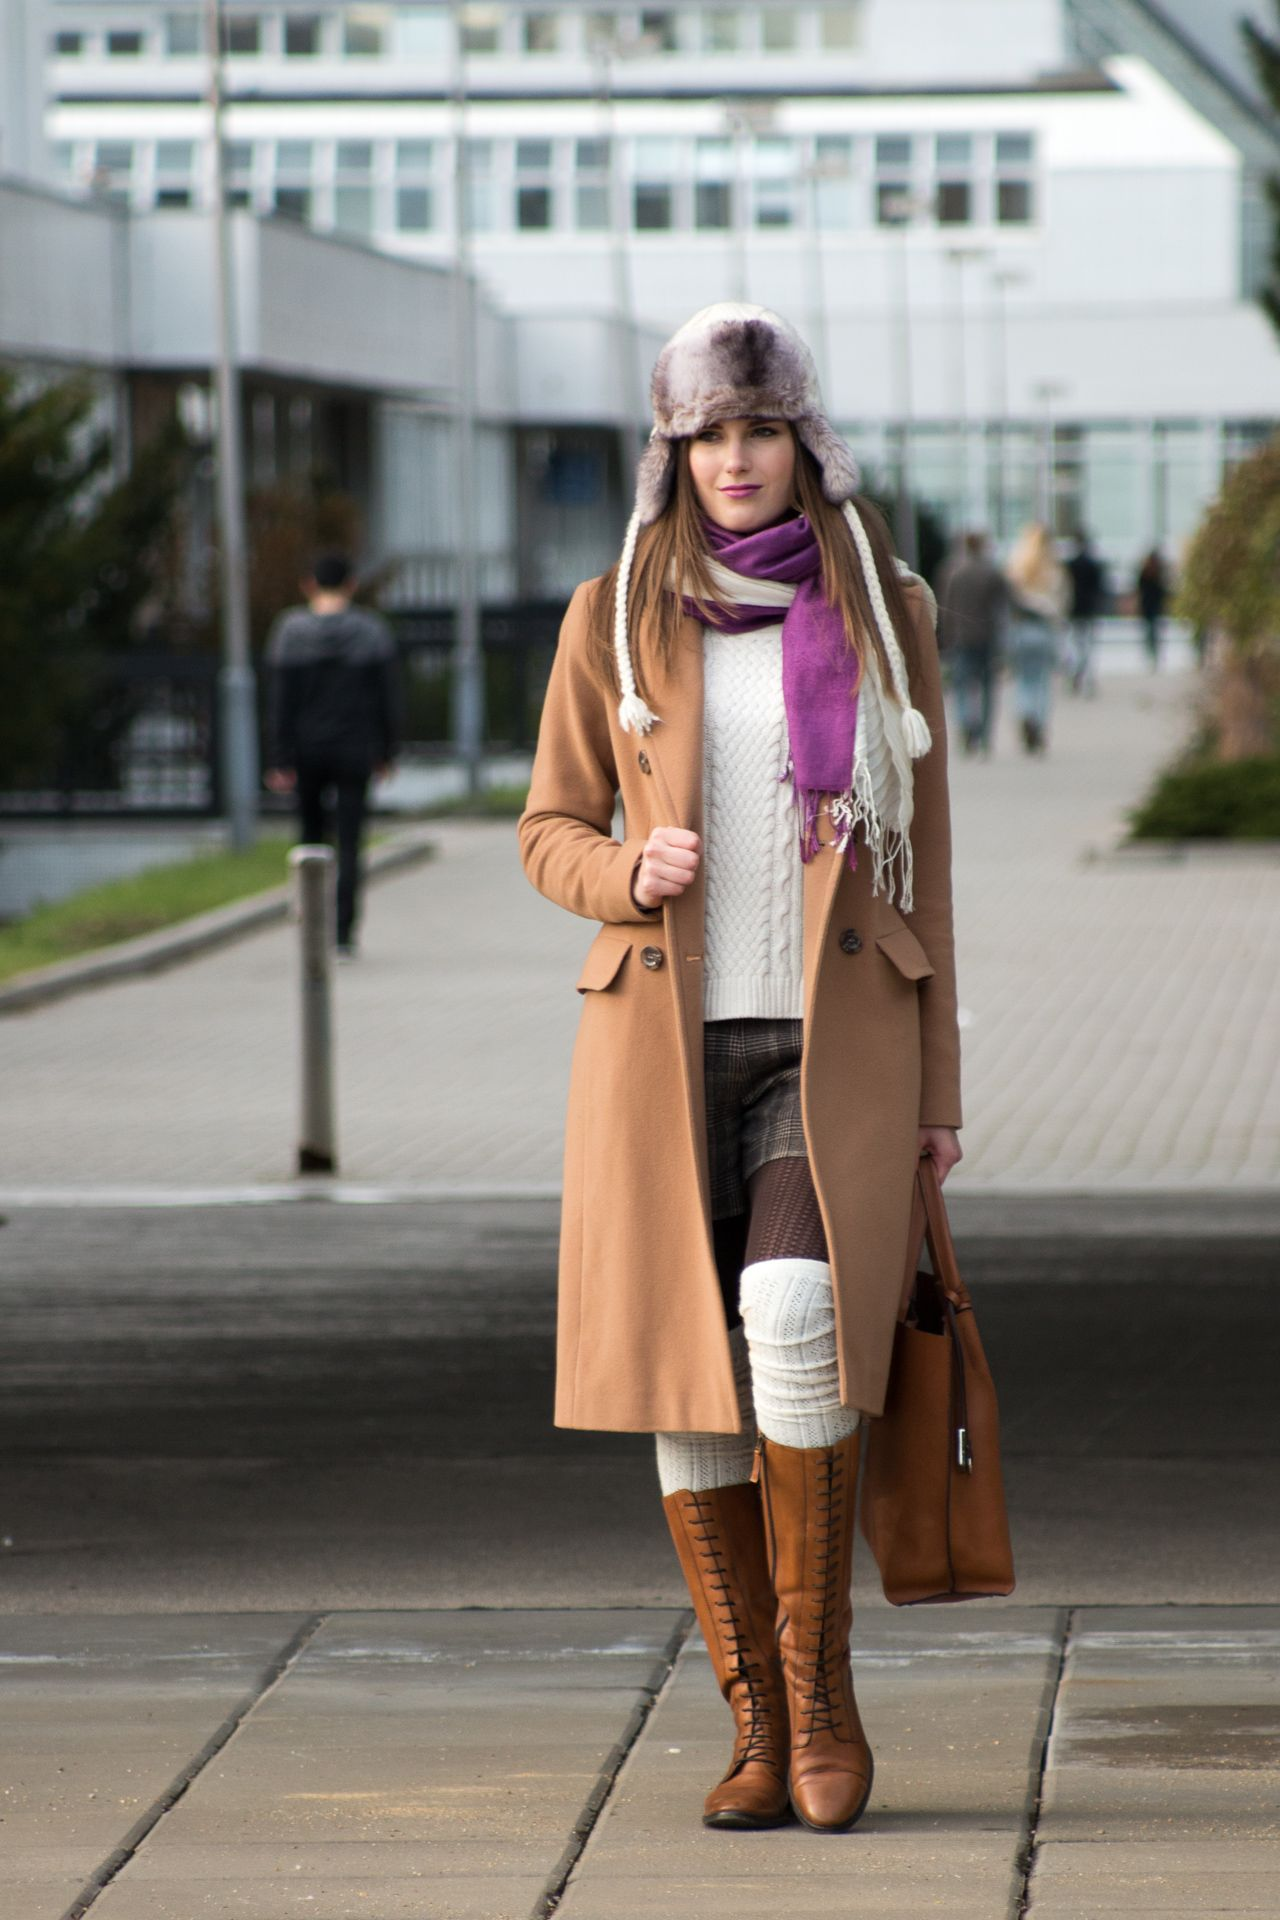 256f2a3bba51b OUTFIT OF THE DAY, OOTD, OUTFIT, FASHION, INSPO, OVER KNEE SOCKS, SHORTS, PIETRO  FILIPI, HAT, SCARF, BOOTS, CREAMY, CAMEL COAT